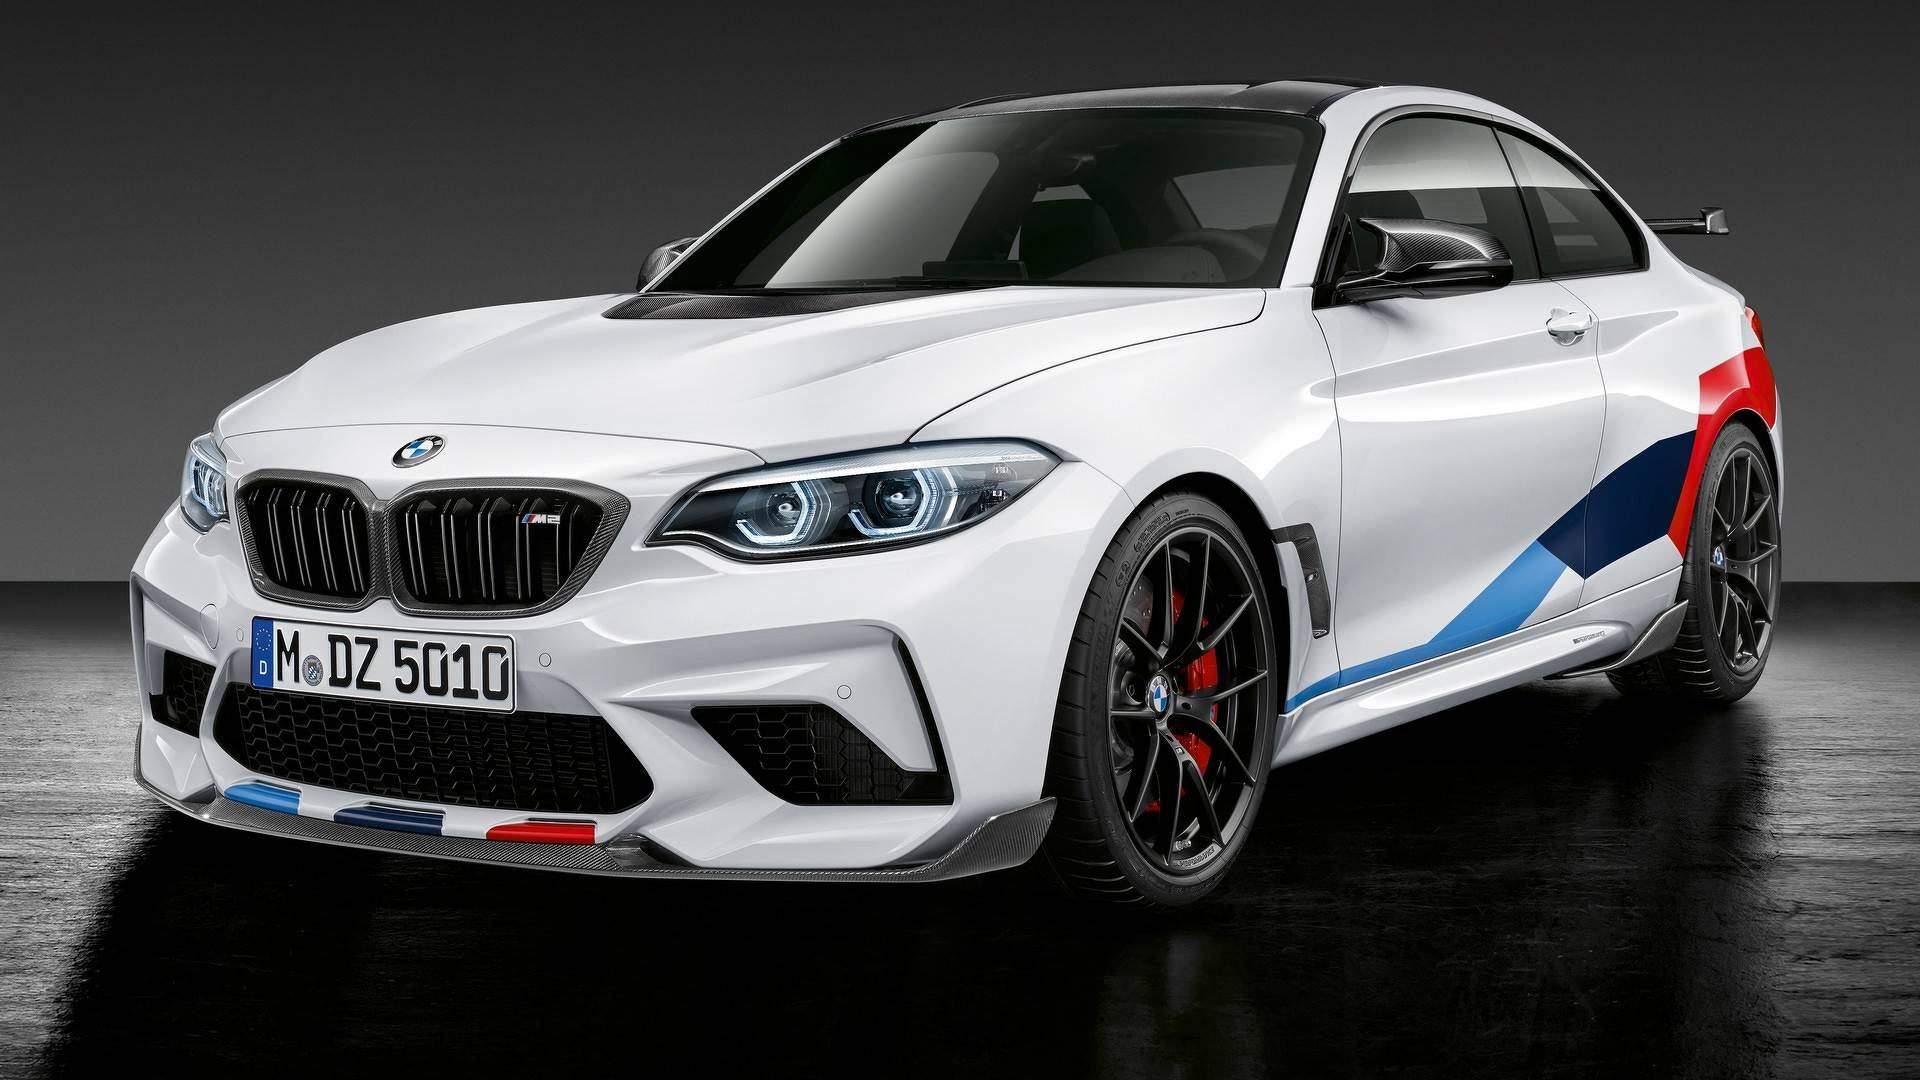 Bmw M2 Release Date >> Bmw M2 Cs Coming Next Year M2 Csl Could Follow